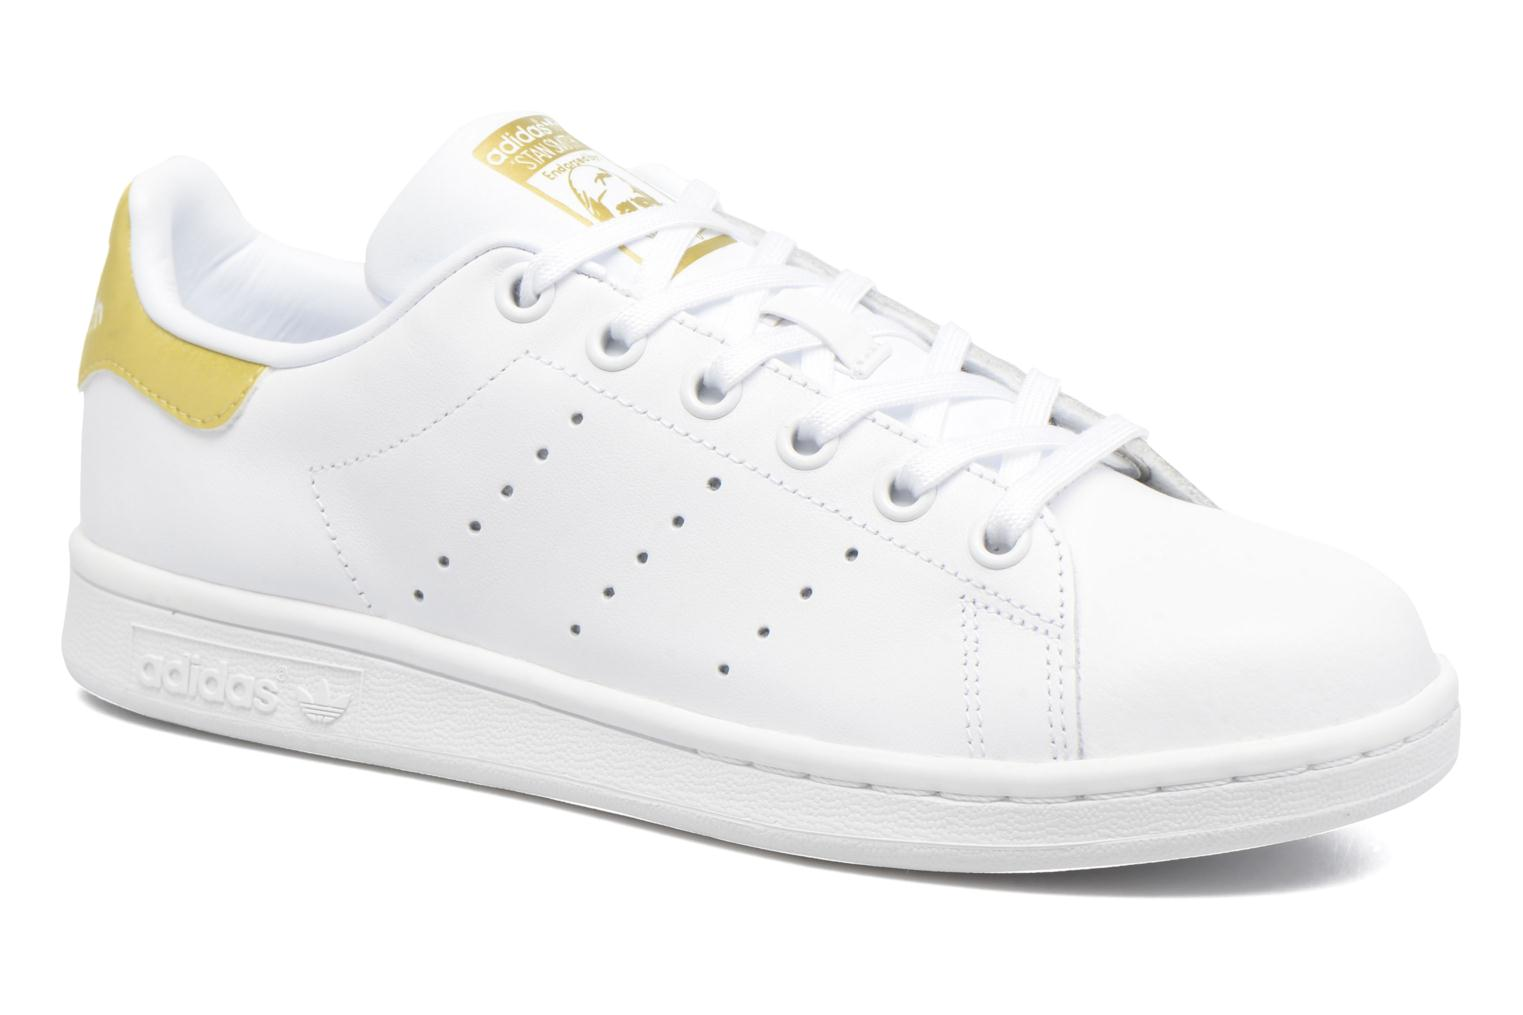 STAN SMITH J Ftwbla/Ftwbla/Ormeta